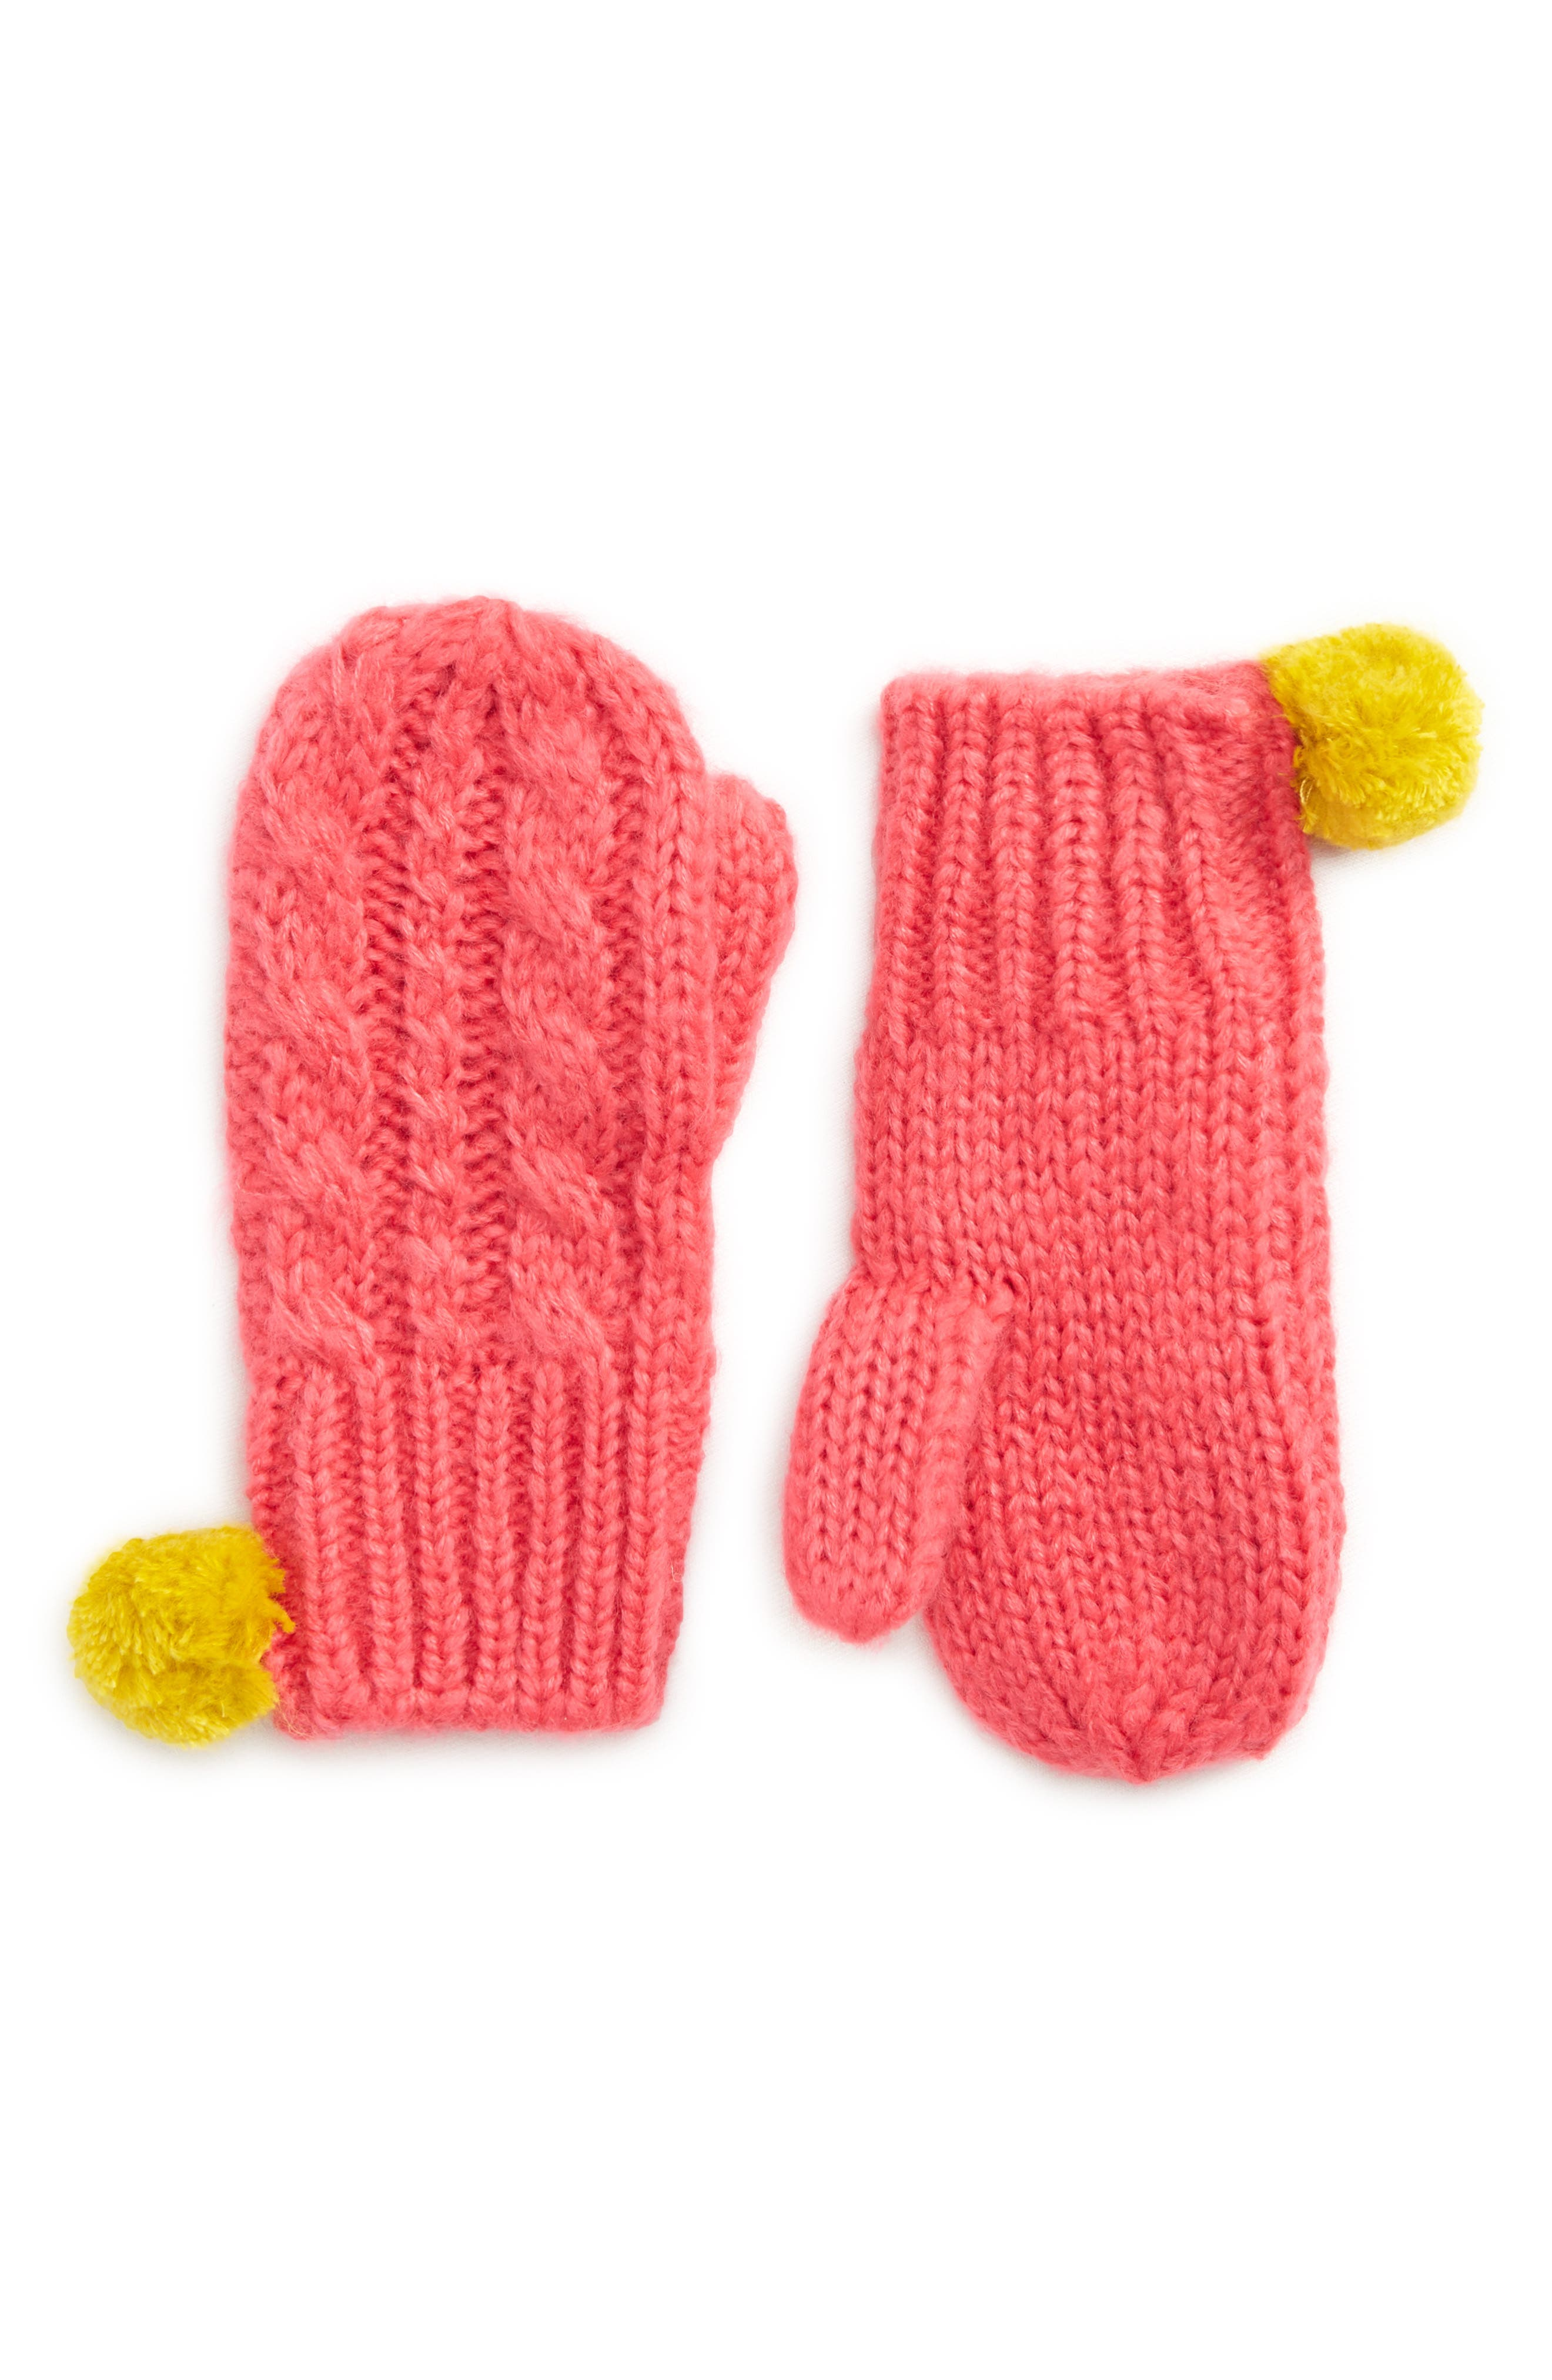 Alternate Image 1 Selected - Mini Boden Cable Knit Mittens (Toddler Girls, Little Girls & Big Girls)